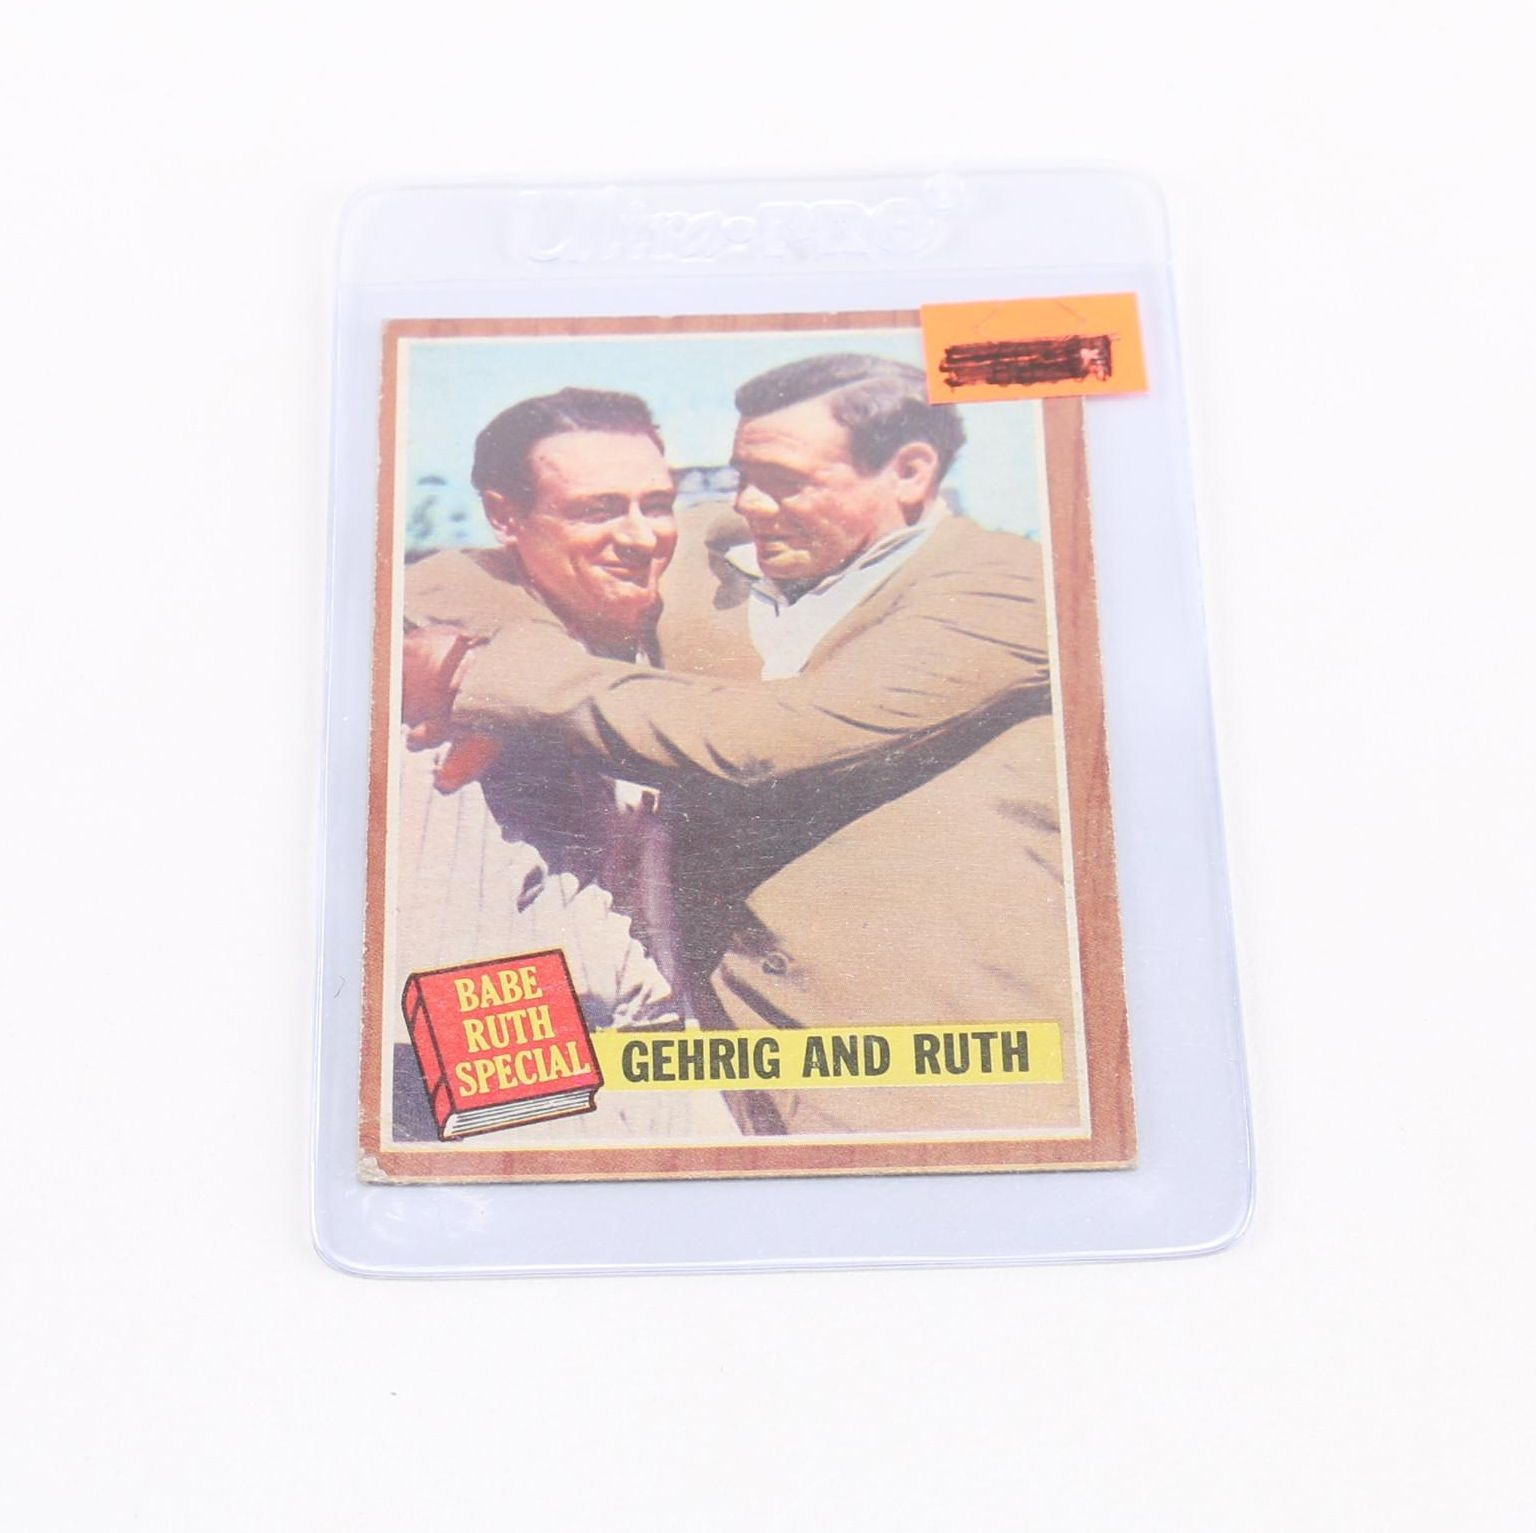 1962 Topps #140 Gehrig and Ruth Card